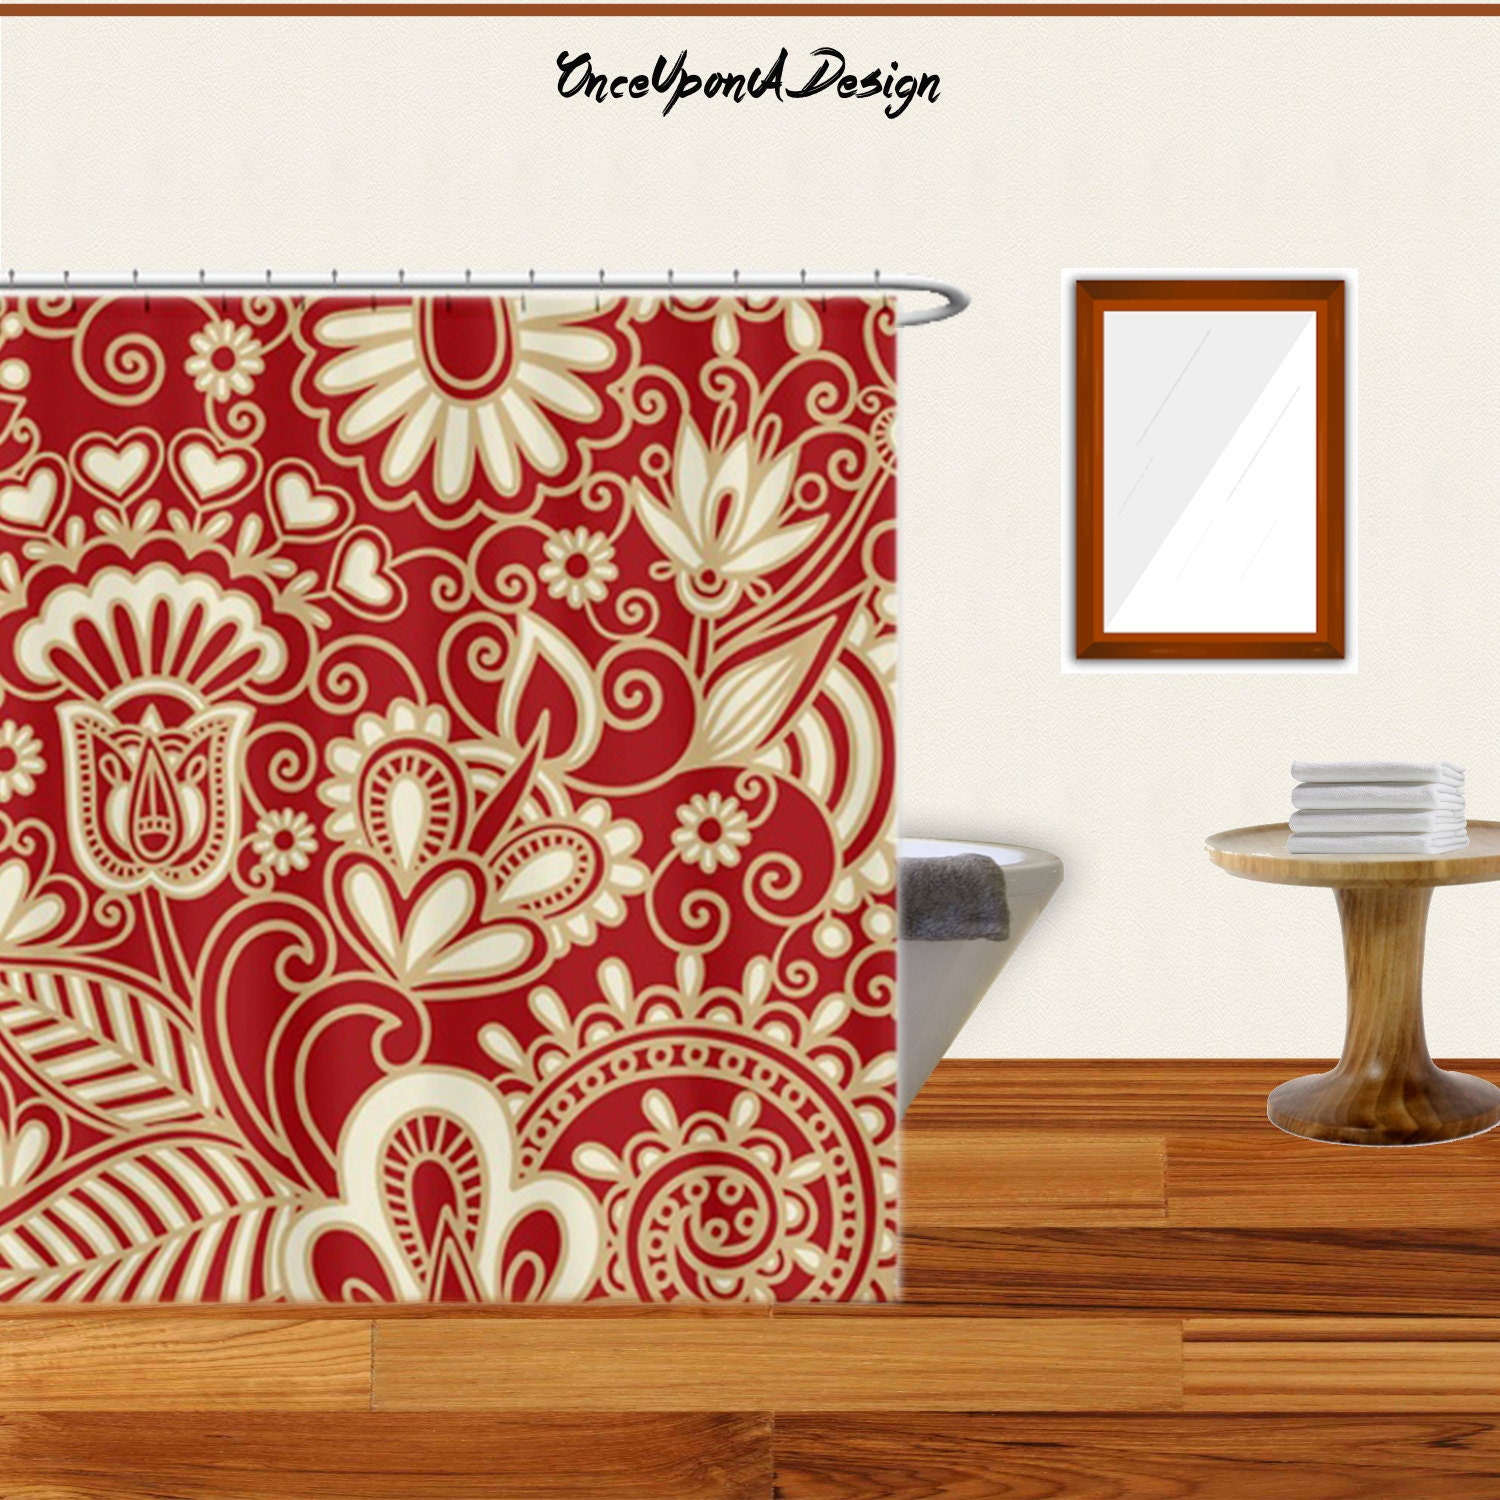 Cool Art Shower Curtain Red Gold Shower By XOnceUponADesignx